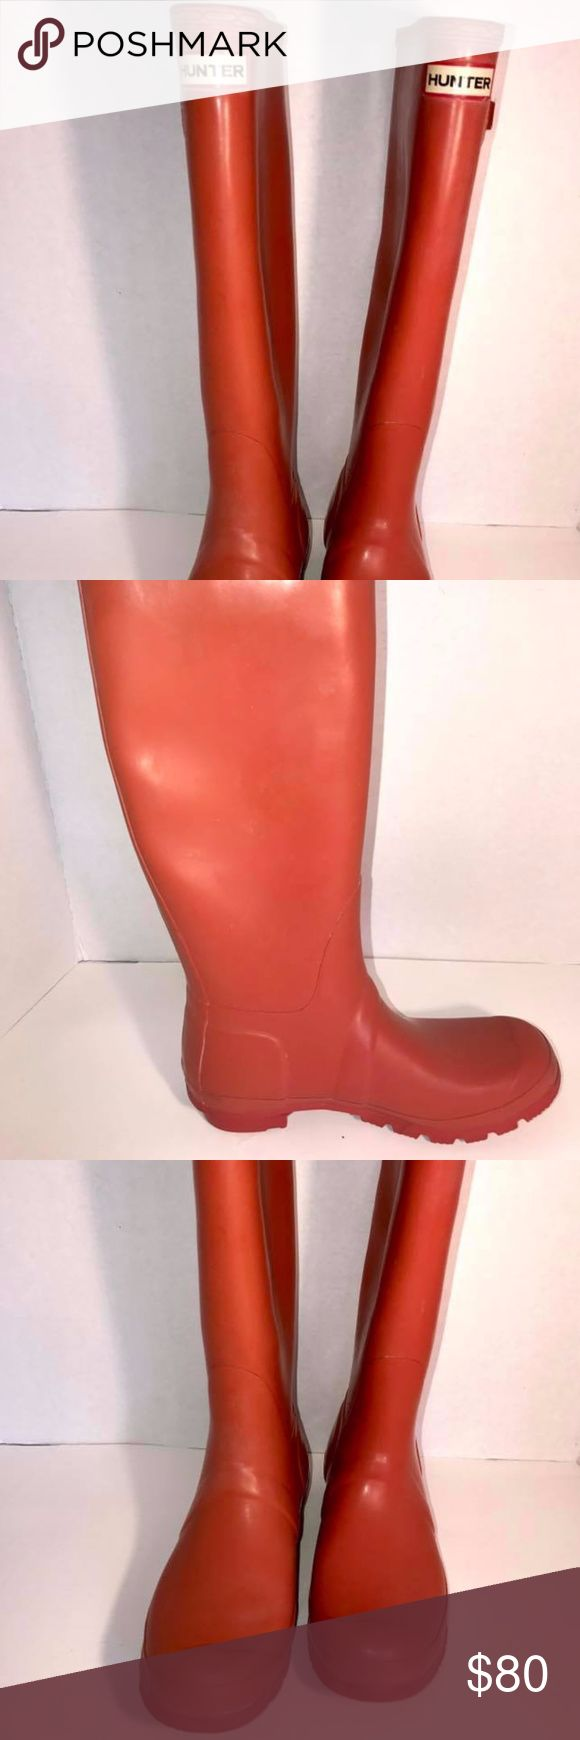 Hunter Tall Rain Boots Orange 7M/8f Hunter Rain Boots   Size M 7 W 8   Burnt Rustic Orange  I forgot Hunter runs big, I bought online and need a smaller size  Thank You!!! Photos may show coloring difference due to lighting  NOTE:   I list for friends as well so items may come from a home with pets or smokers. POLICY:  We strive for a 5 Star rating, if we fail in this task we are happy to accept returns for any discrepancies on our part.           I travel several days out of the month…